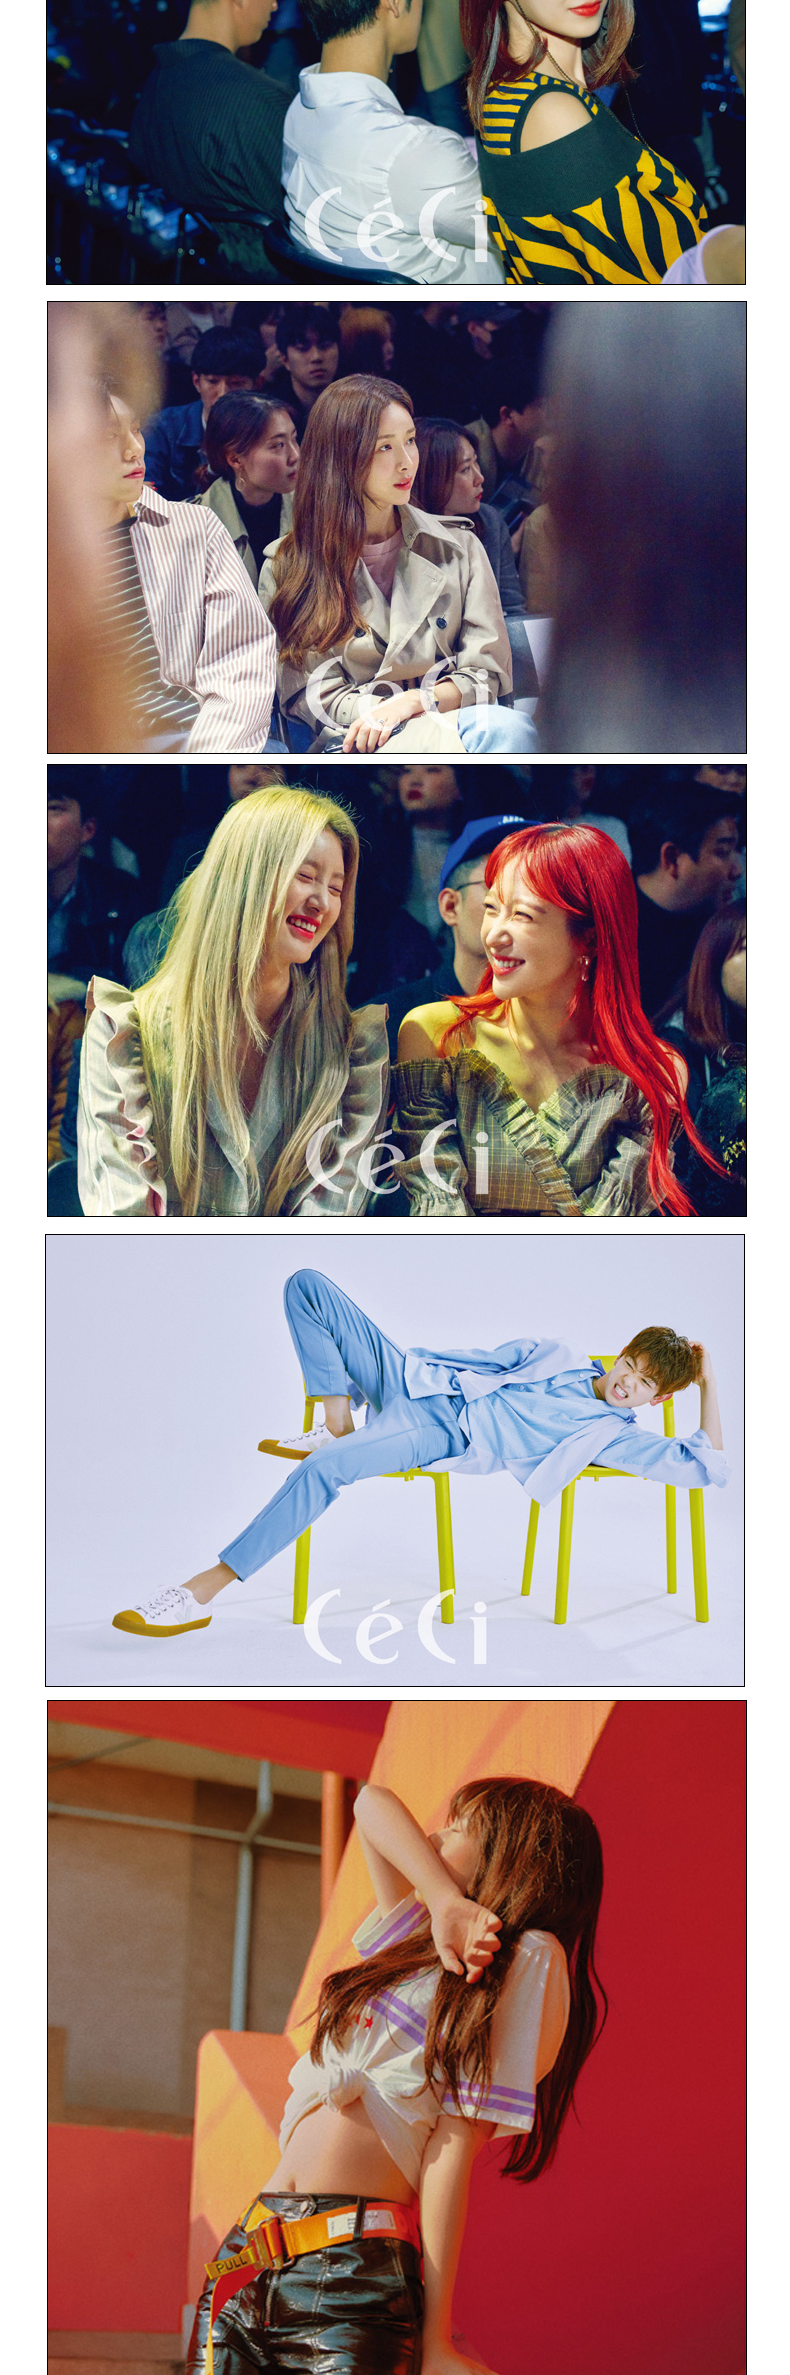 CECI ANOTHER CHOICE 2018.05 A ver (Twice, NCT Dream, Lovelyz, JBJ, BTOB, EXID, HyeongSeop x EuiWoong)